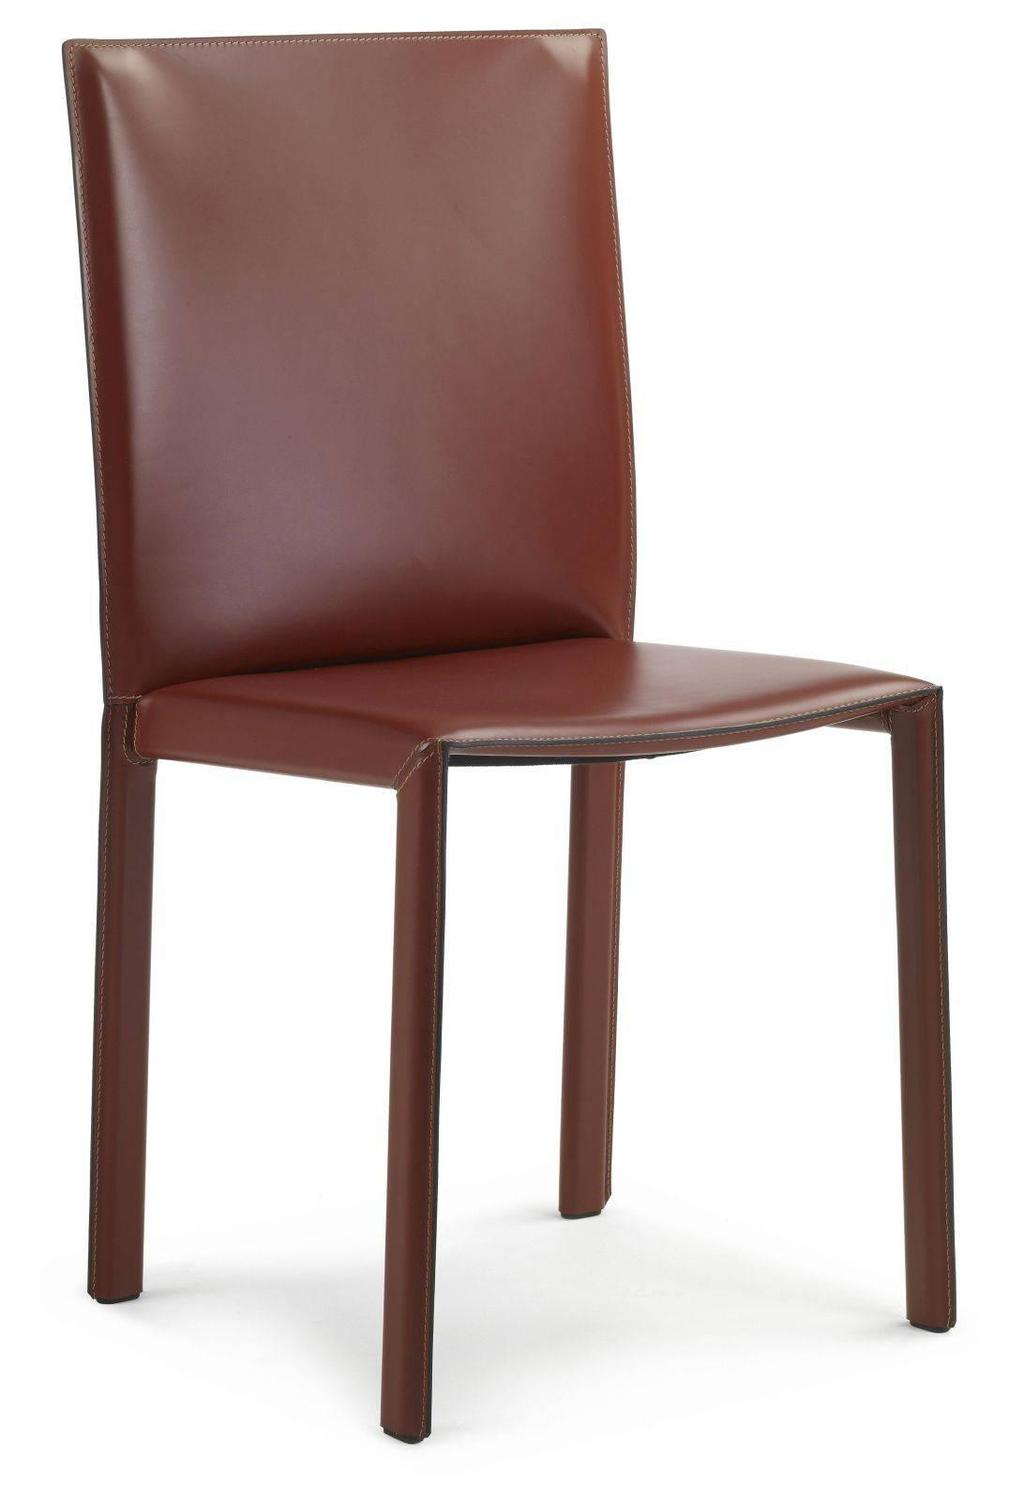 Lc03 italian leather chair modern design made in italy for Modern leather dining room chairs